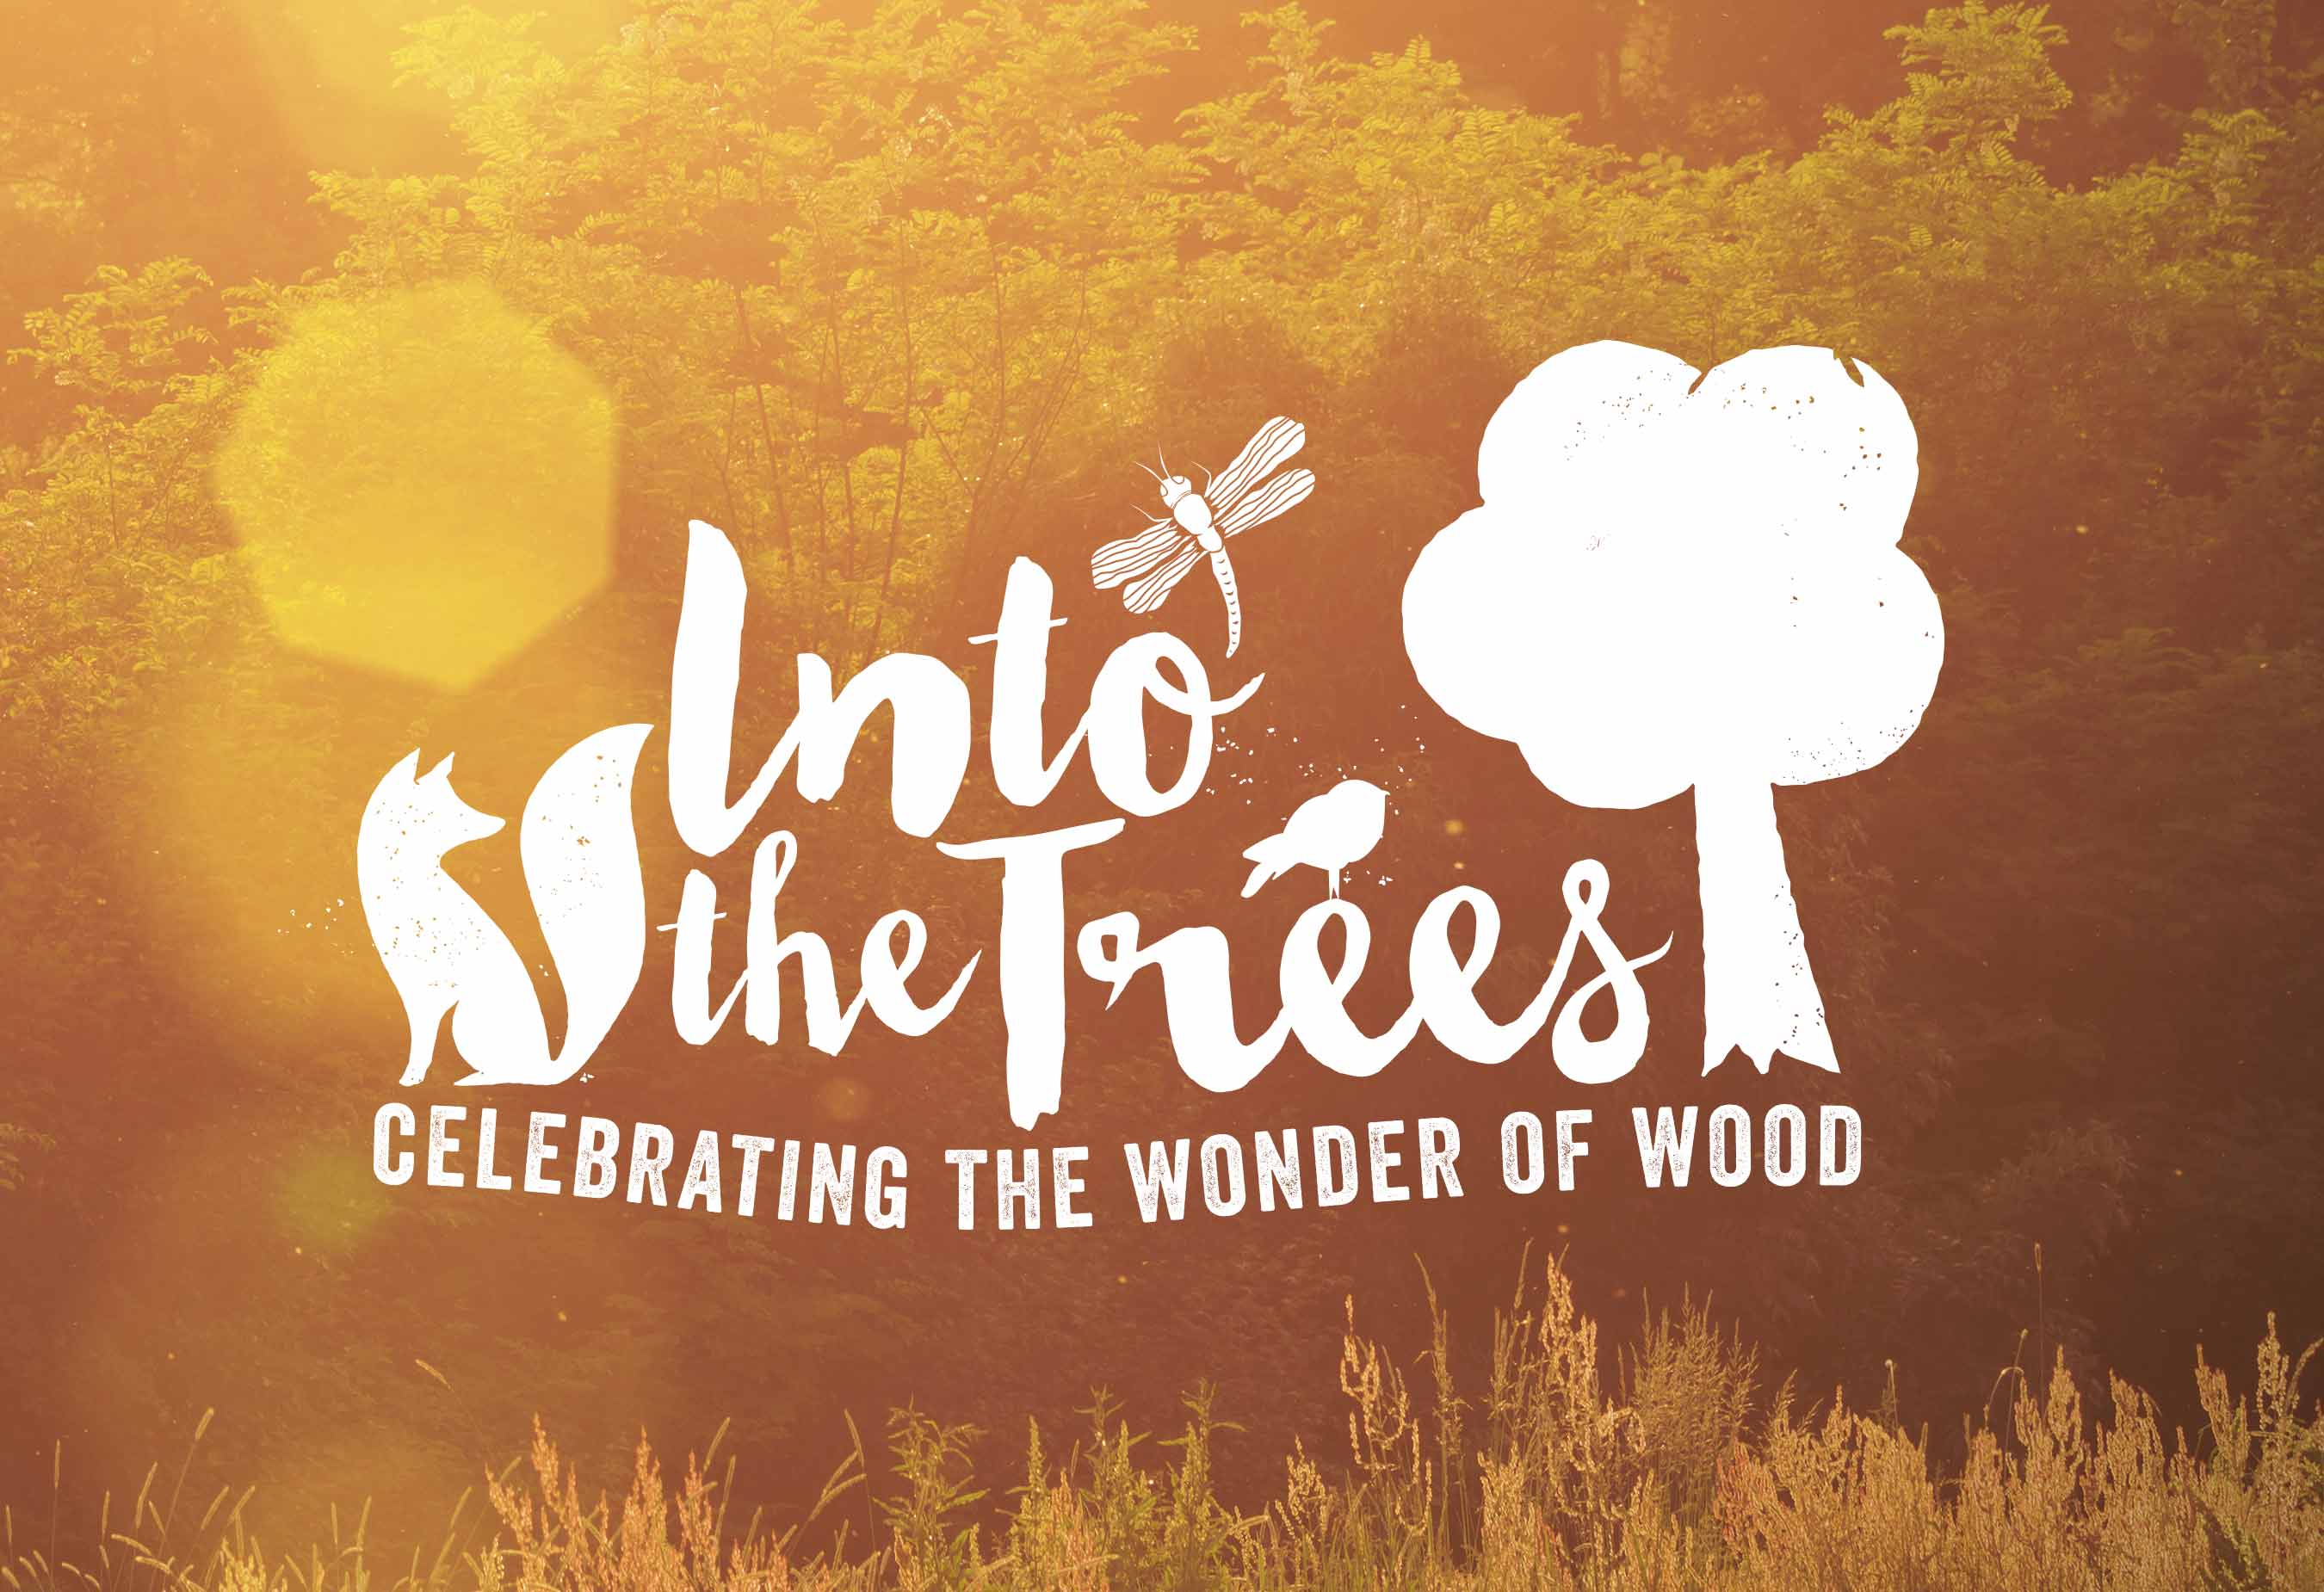 Into the trees branding